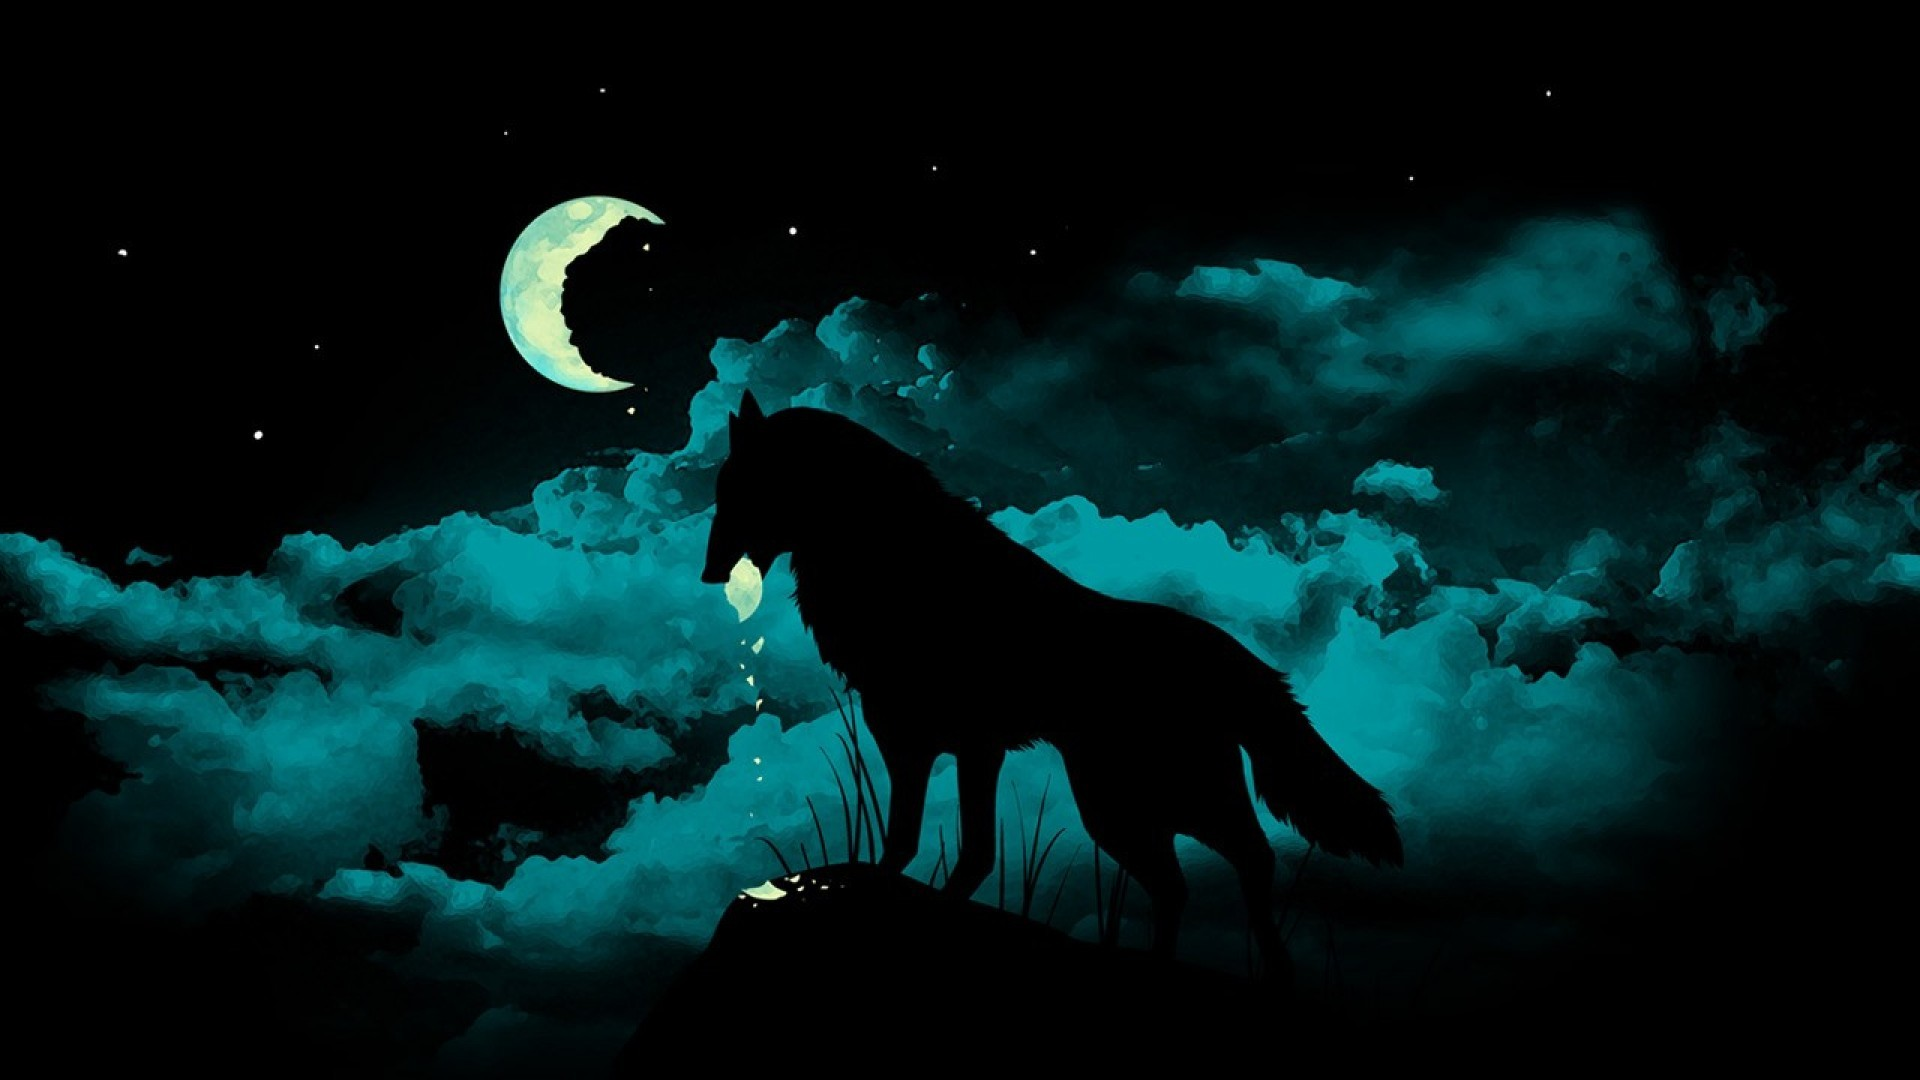 Hd Wallpaper Wolf Hd Wallpaper For Desktop Background